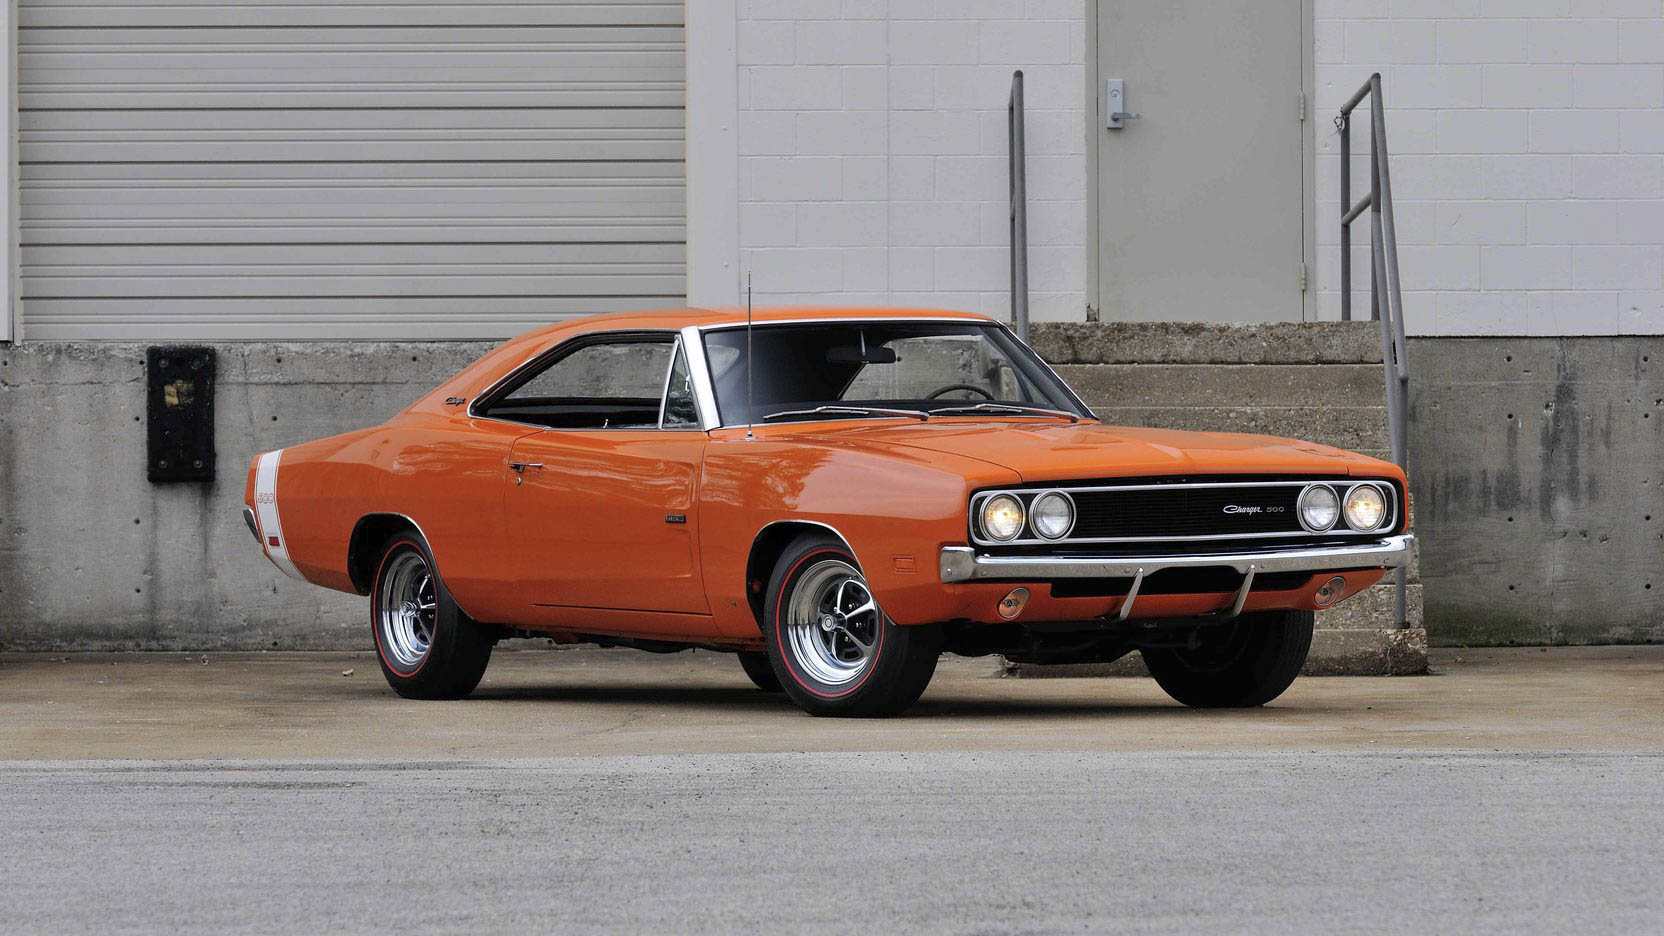 1969 Dodge Charger 500 front 3/4